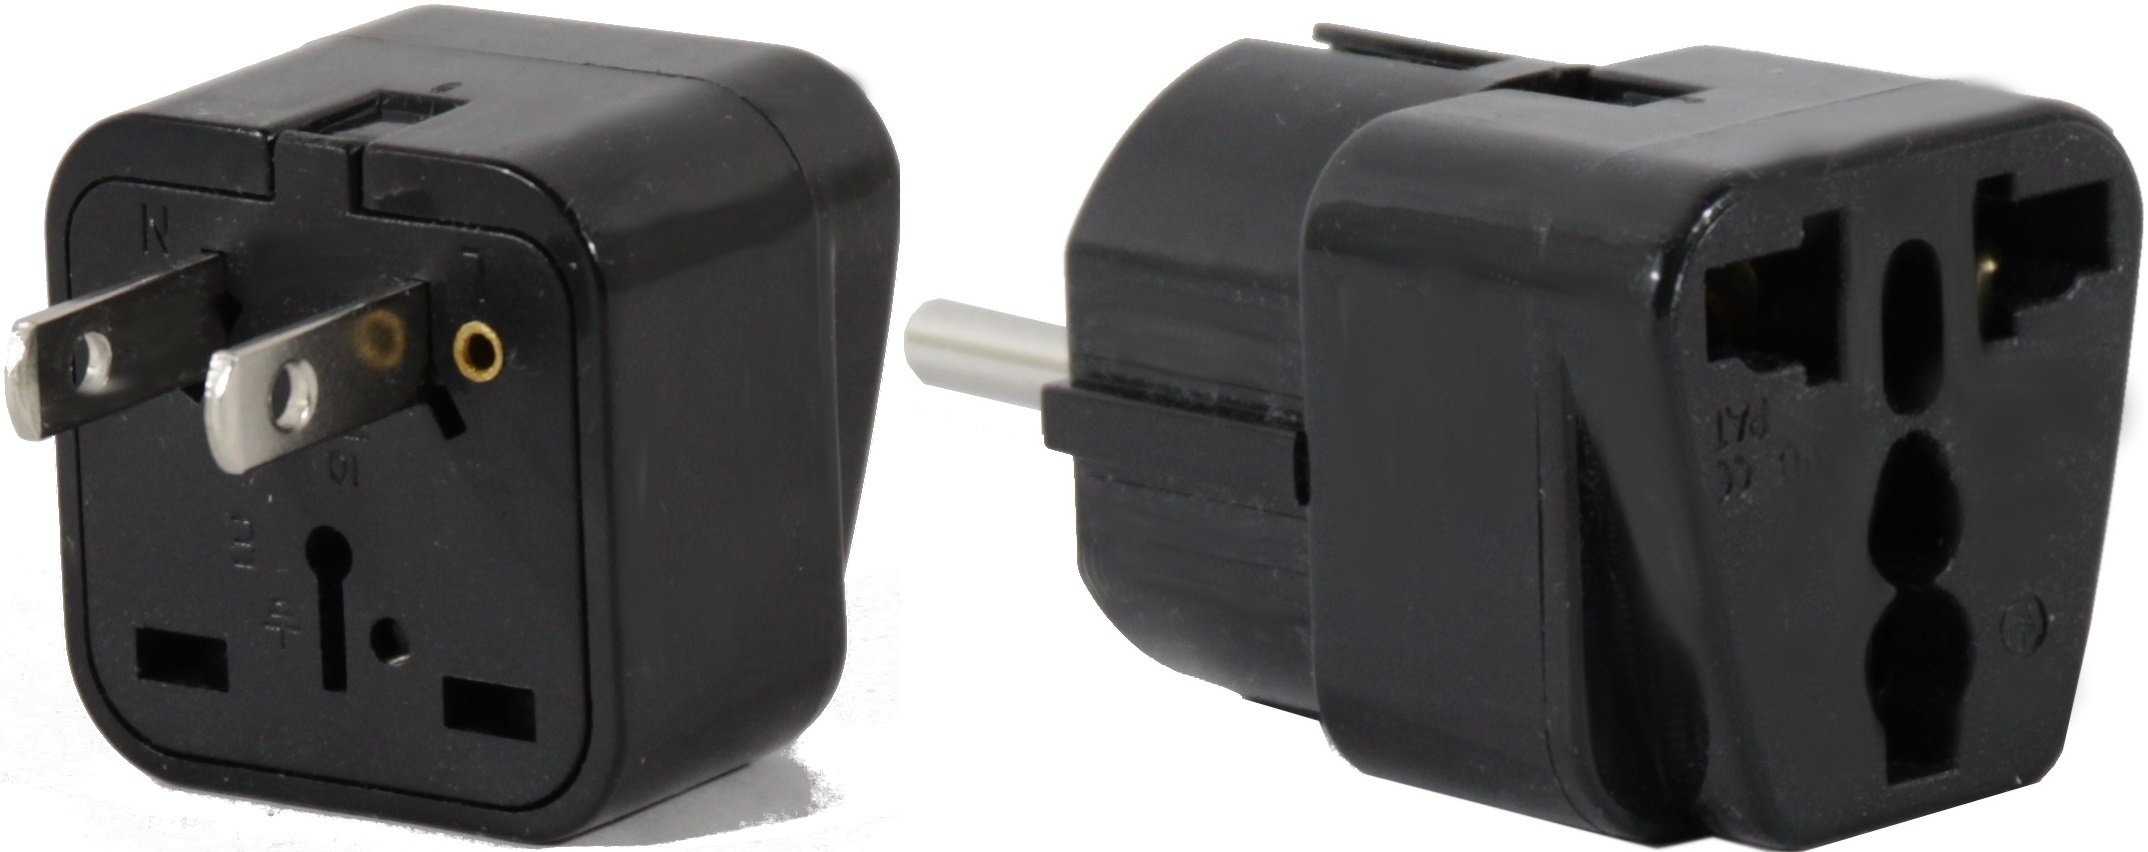 PERU Travel Adapter Plug for USA/Universal to South America Type A & E (C/F) AC Power Plugs Pack of 2 by Plug in Solutions (Image #1)